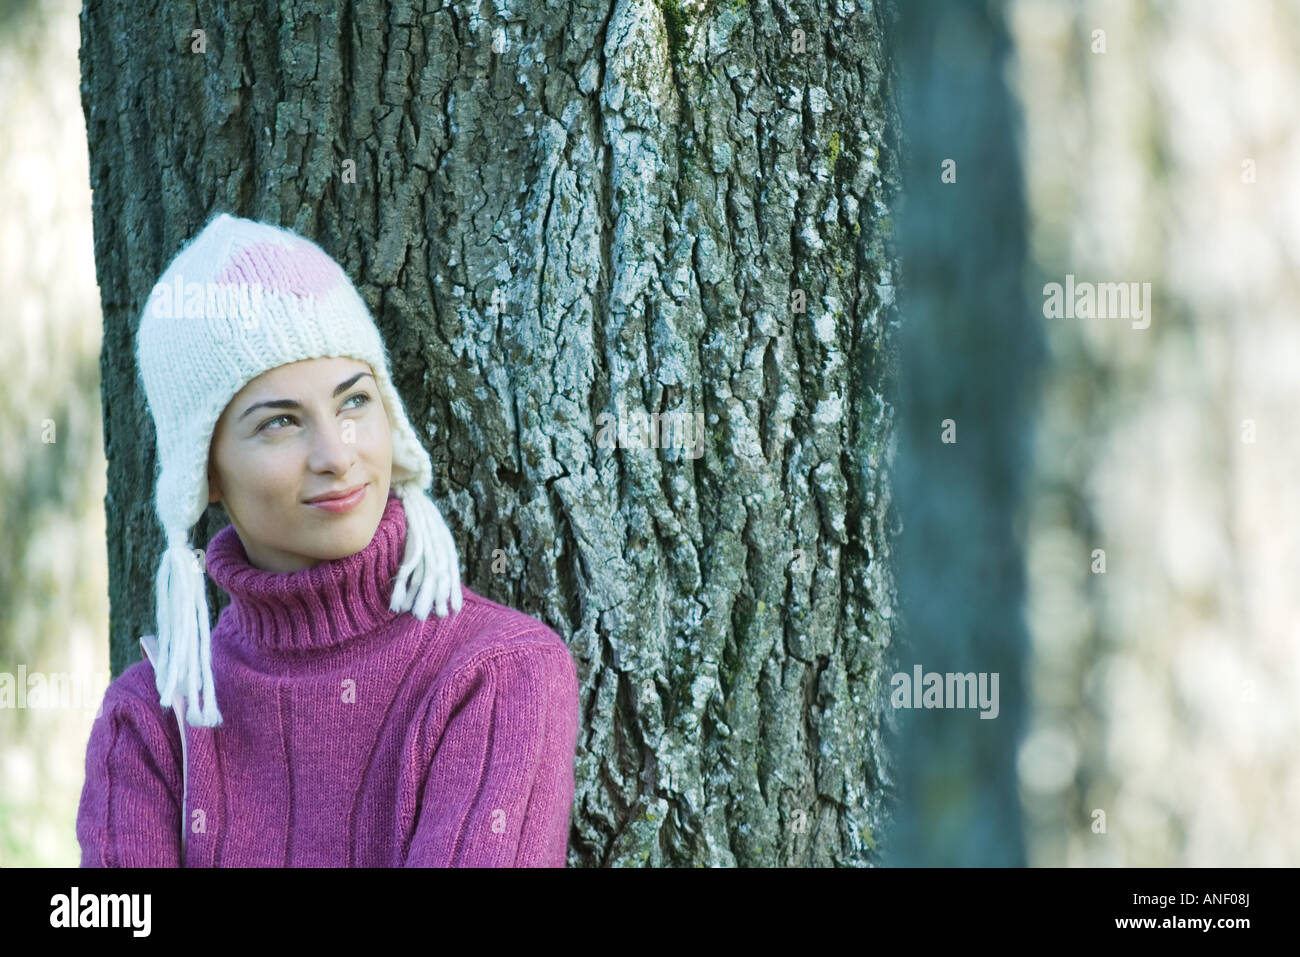 Young woman wearing knit hat, leaning against tree, smiling - Stock Image